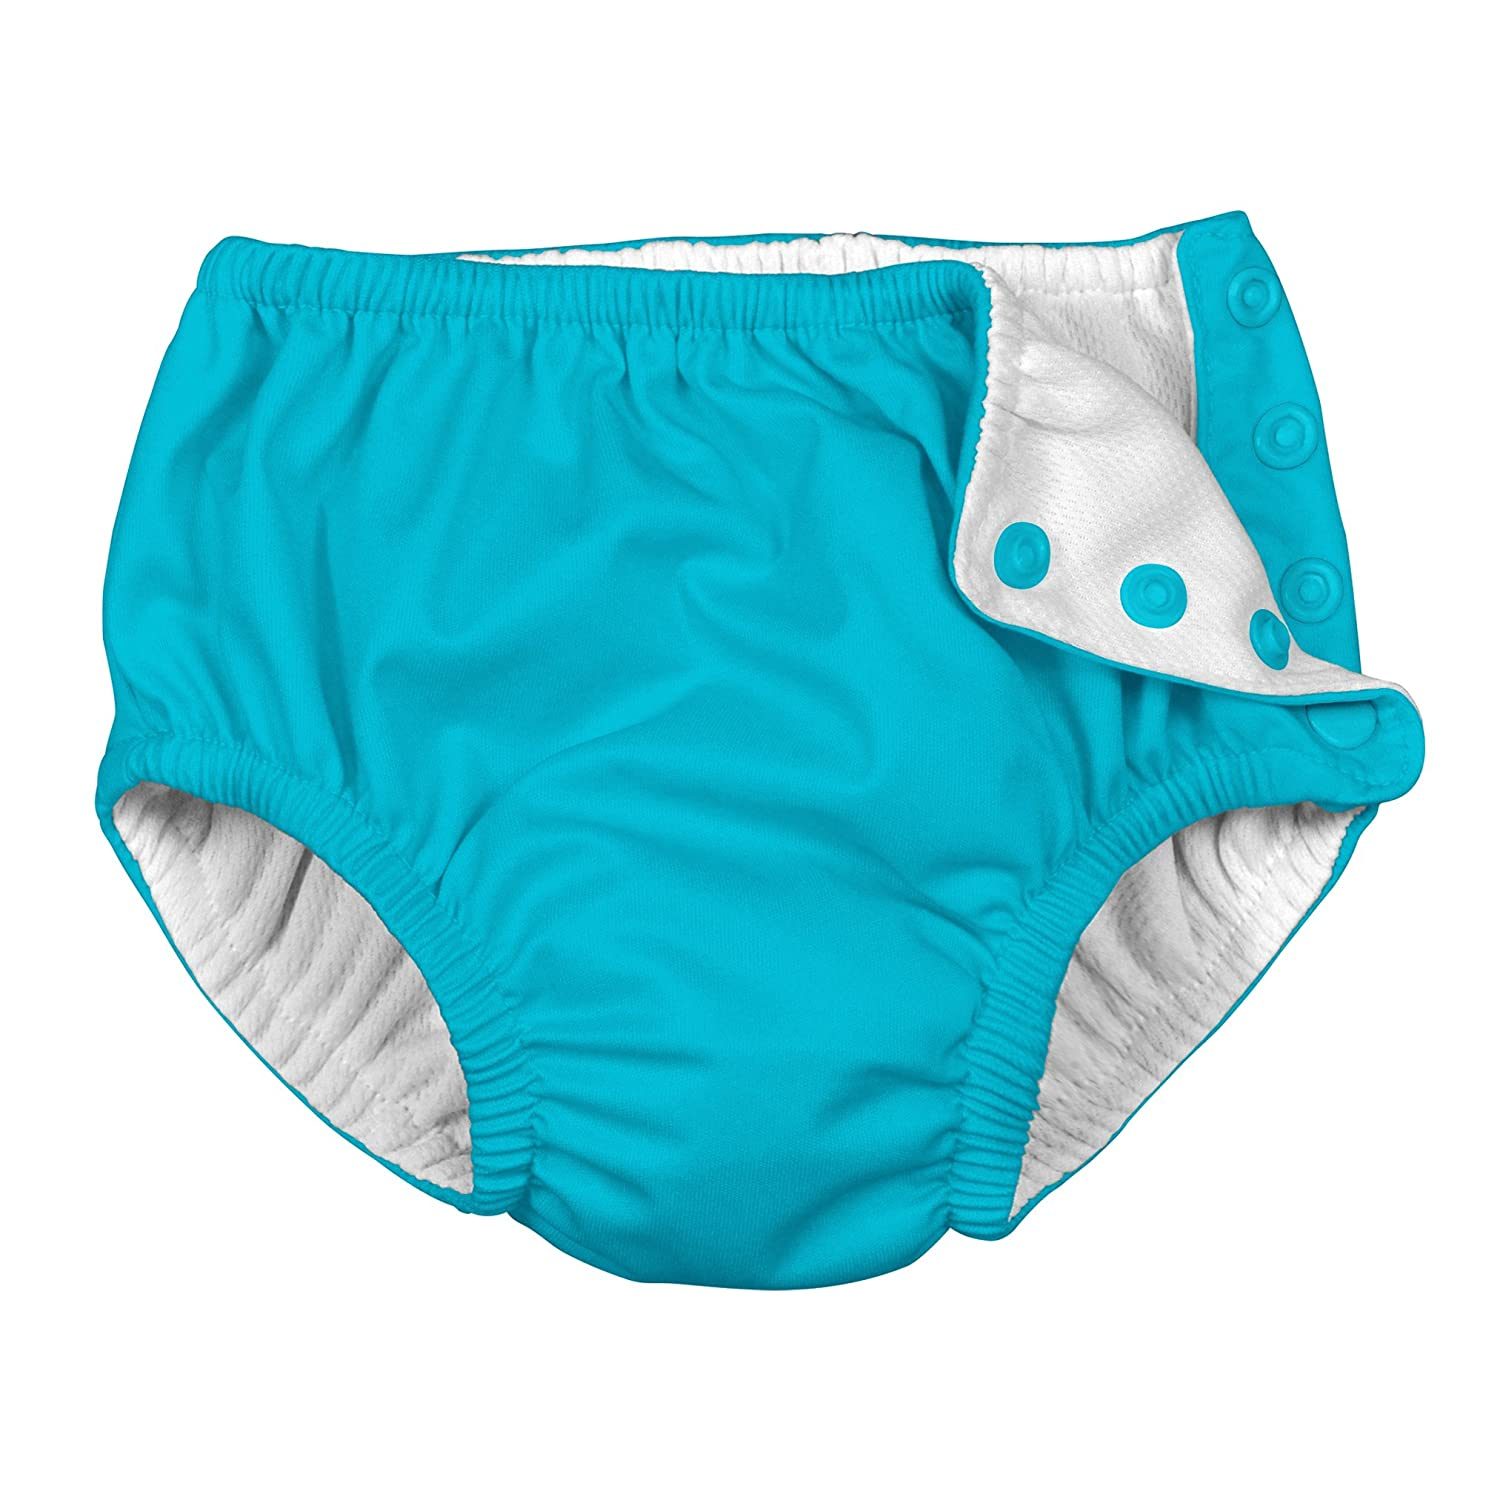 I-Play Baby-Boys Ultimate Reusable Snap Swim Diaper i play Children' s Apparel 721200